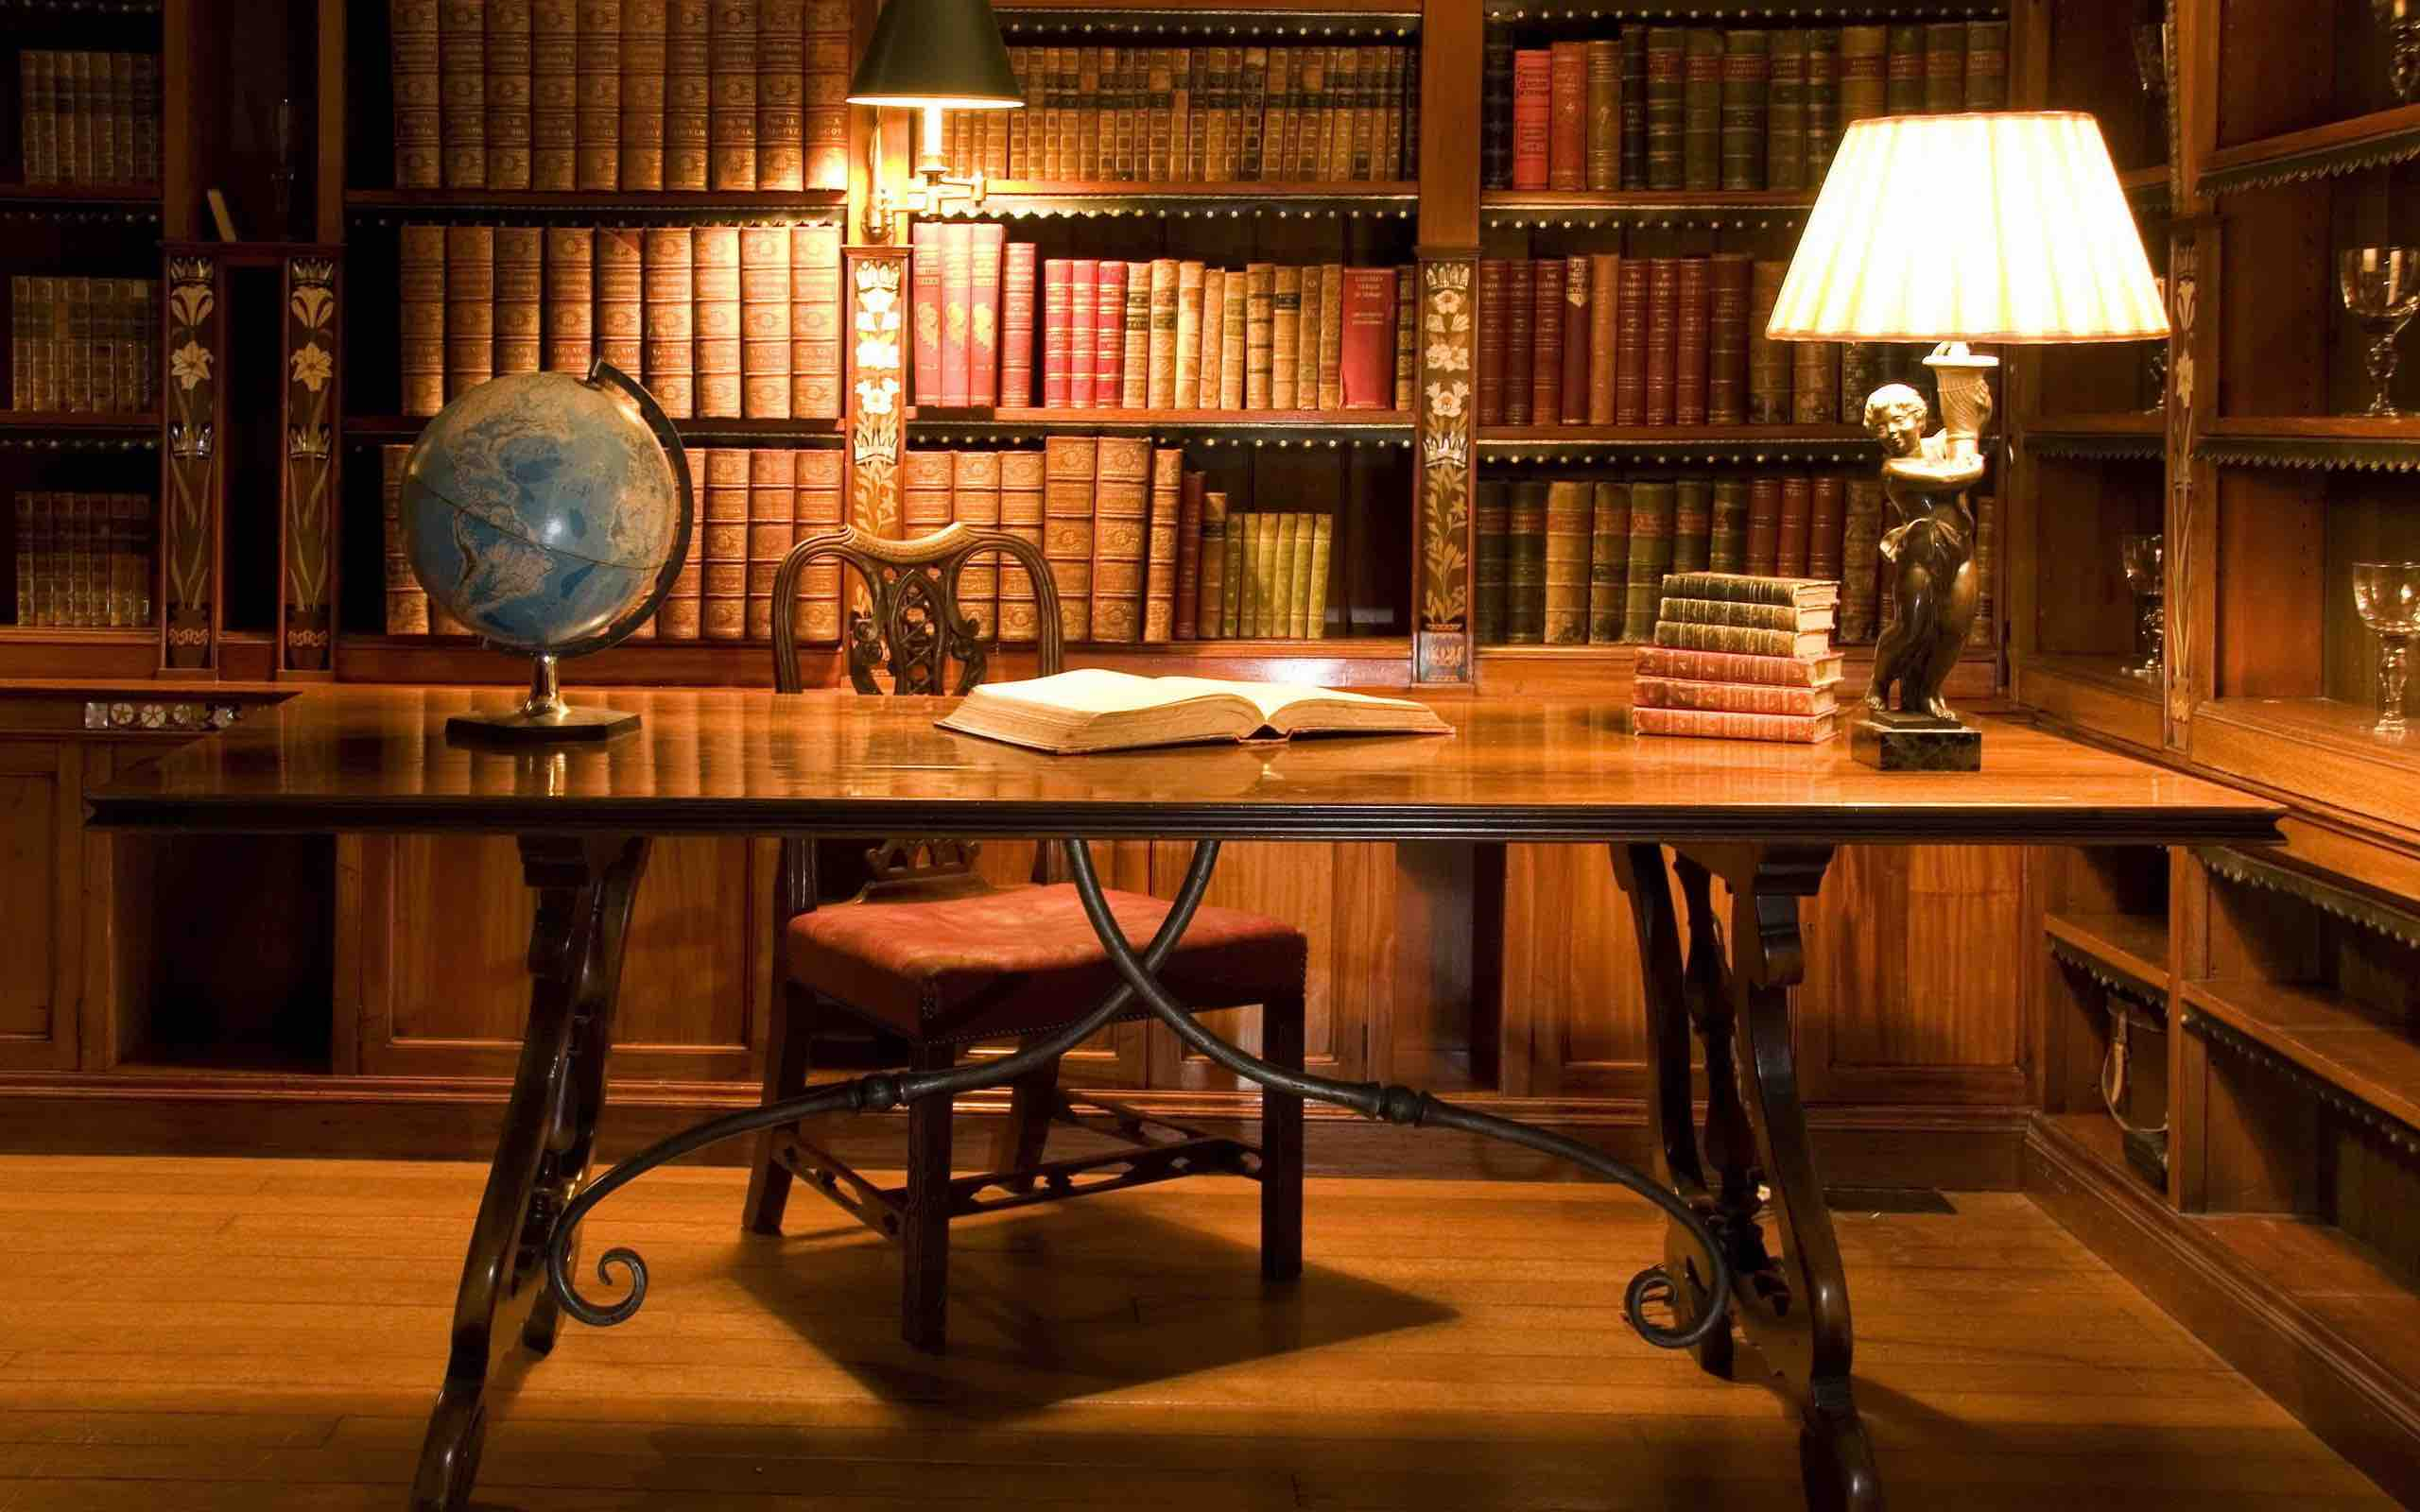 Study_in_the_library_2560x1600.jpg